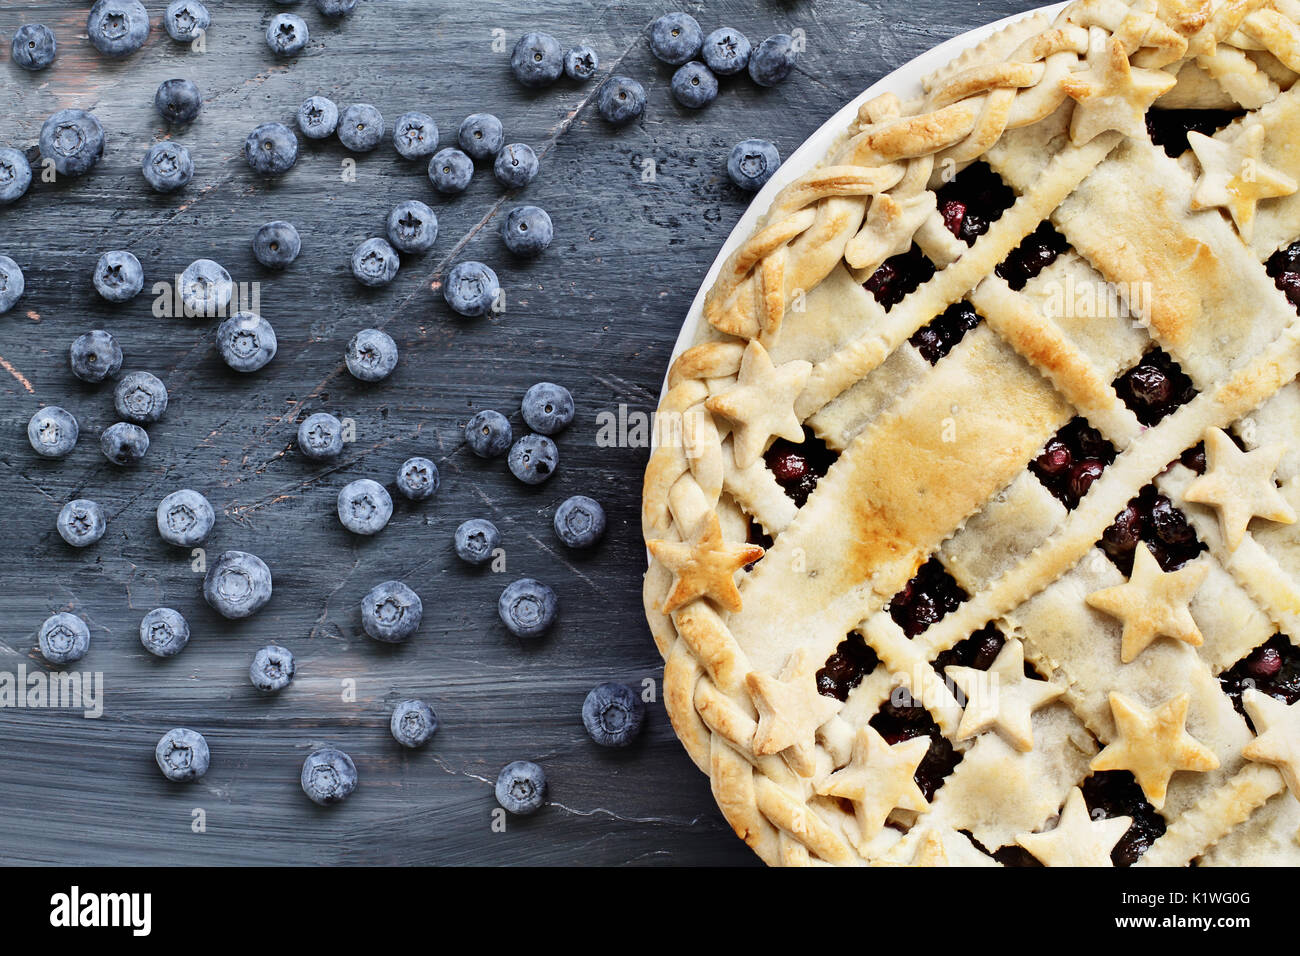 Top view of a blueberry pie with lattice and stars crust and fresh berries scattered across a painted textured wooden background. - Stock Image